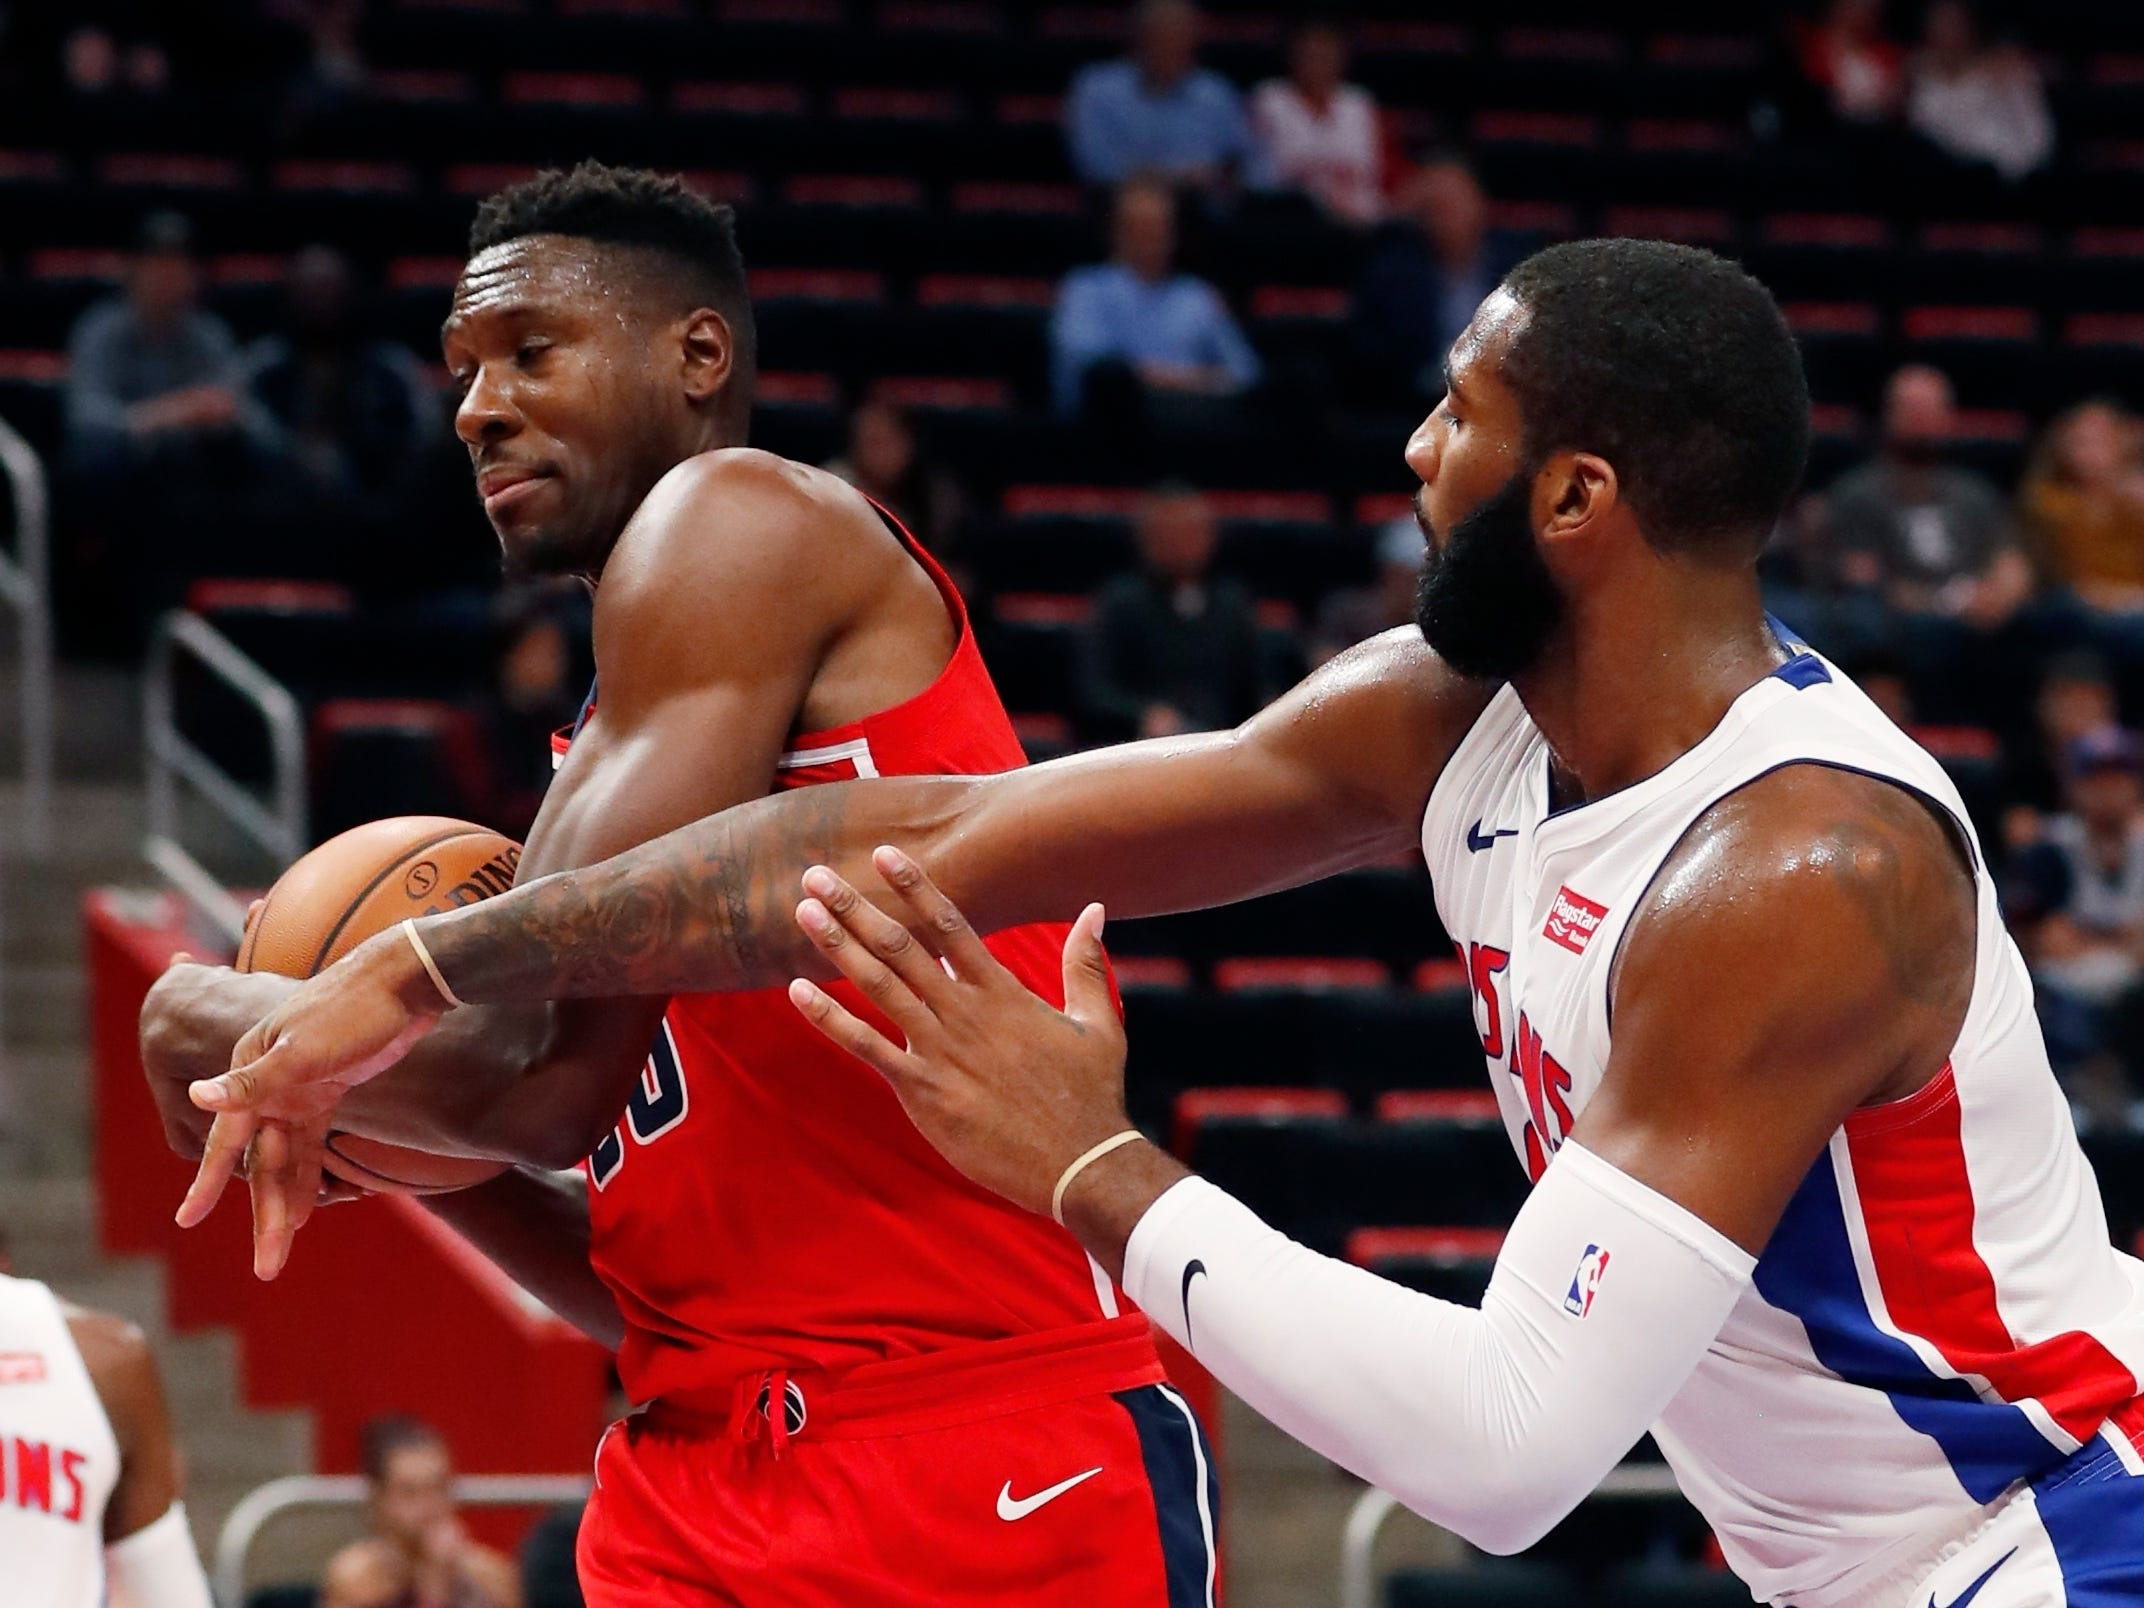 Detroit Pistons center Andre Drummond, right, reaches in as Washington Wizards center Ian Mahinmi grabs a rebound during the first half.